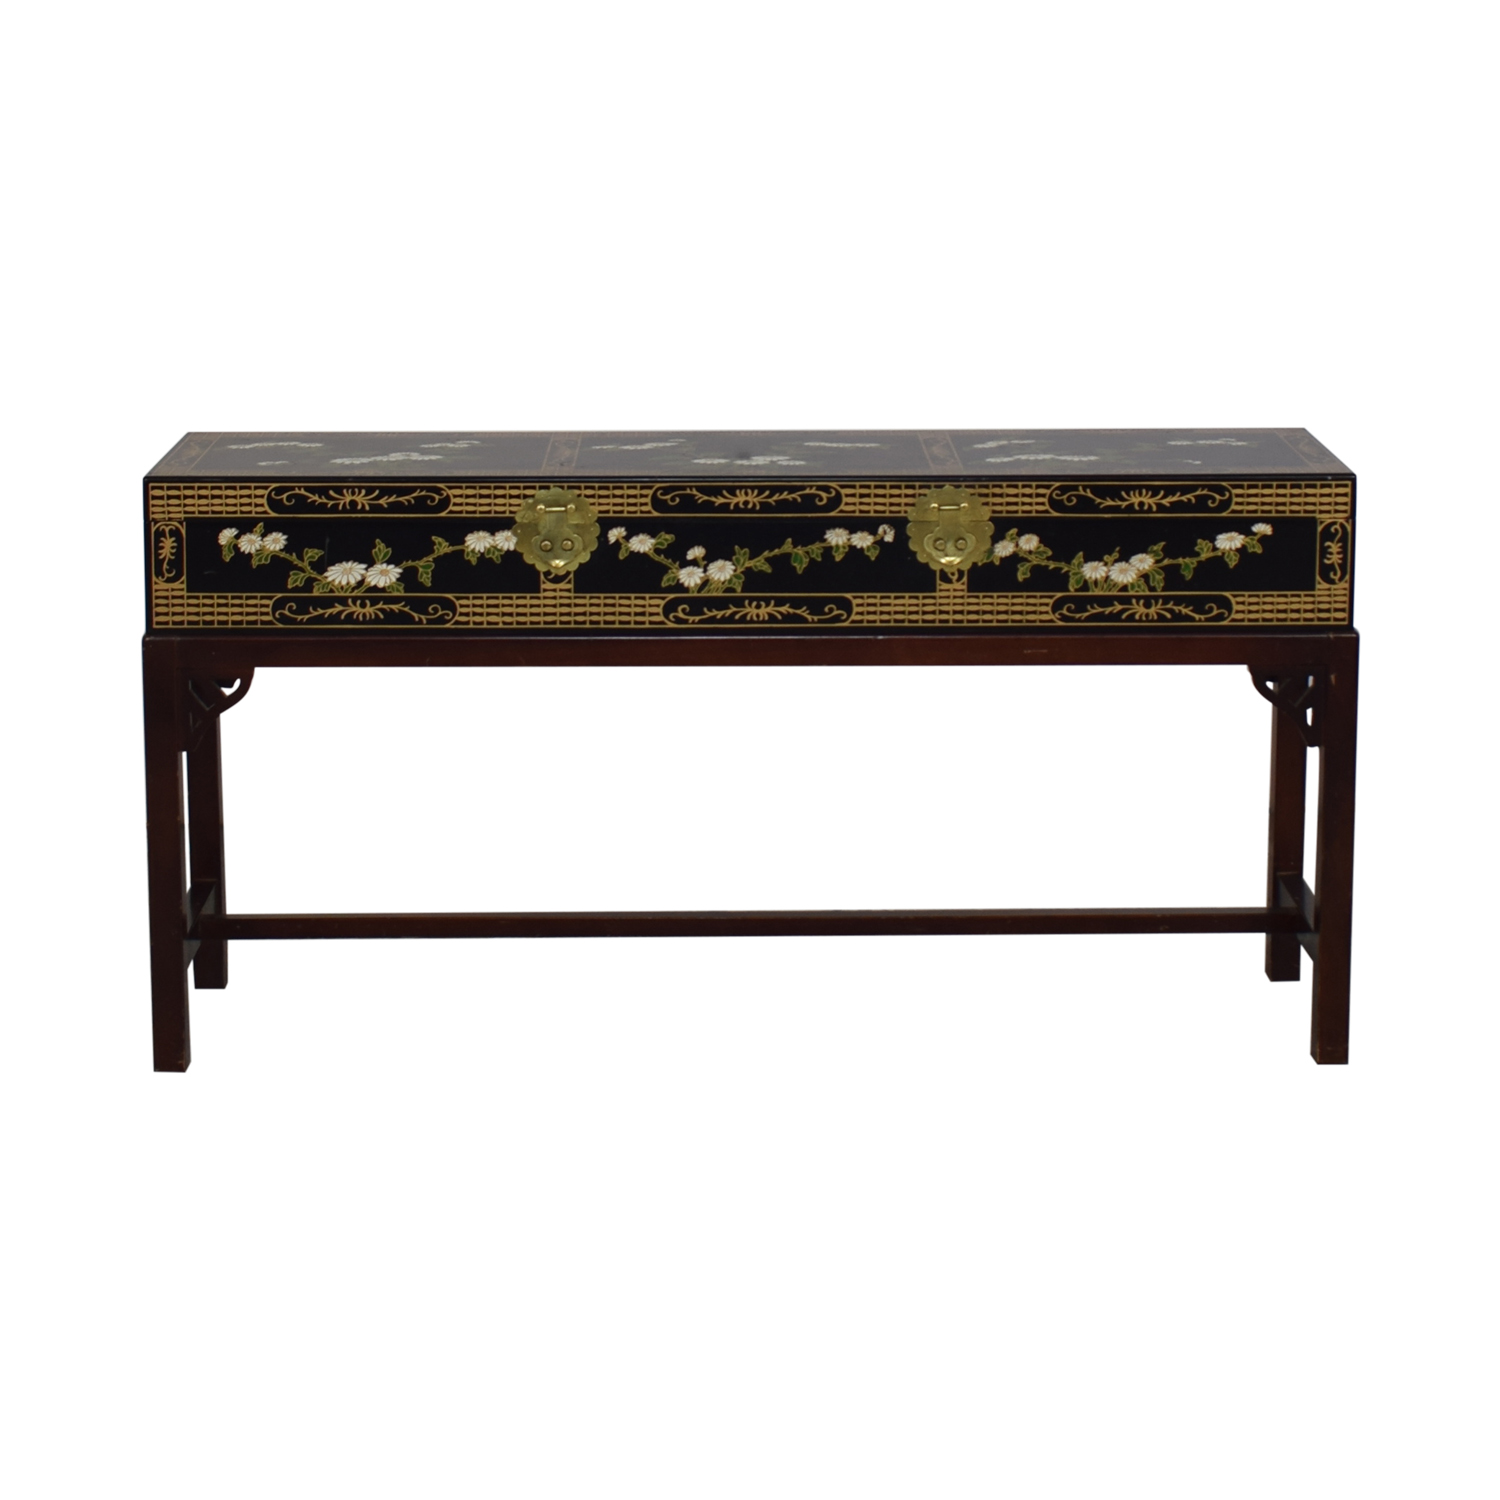 Empire Case Goods Empire Case Goods Antique Vanity Table discount